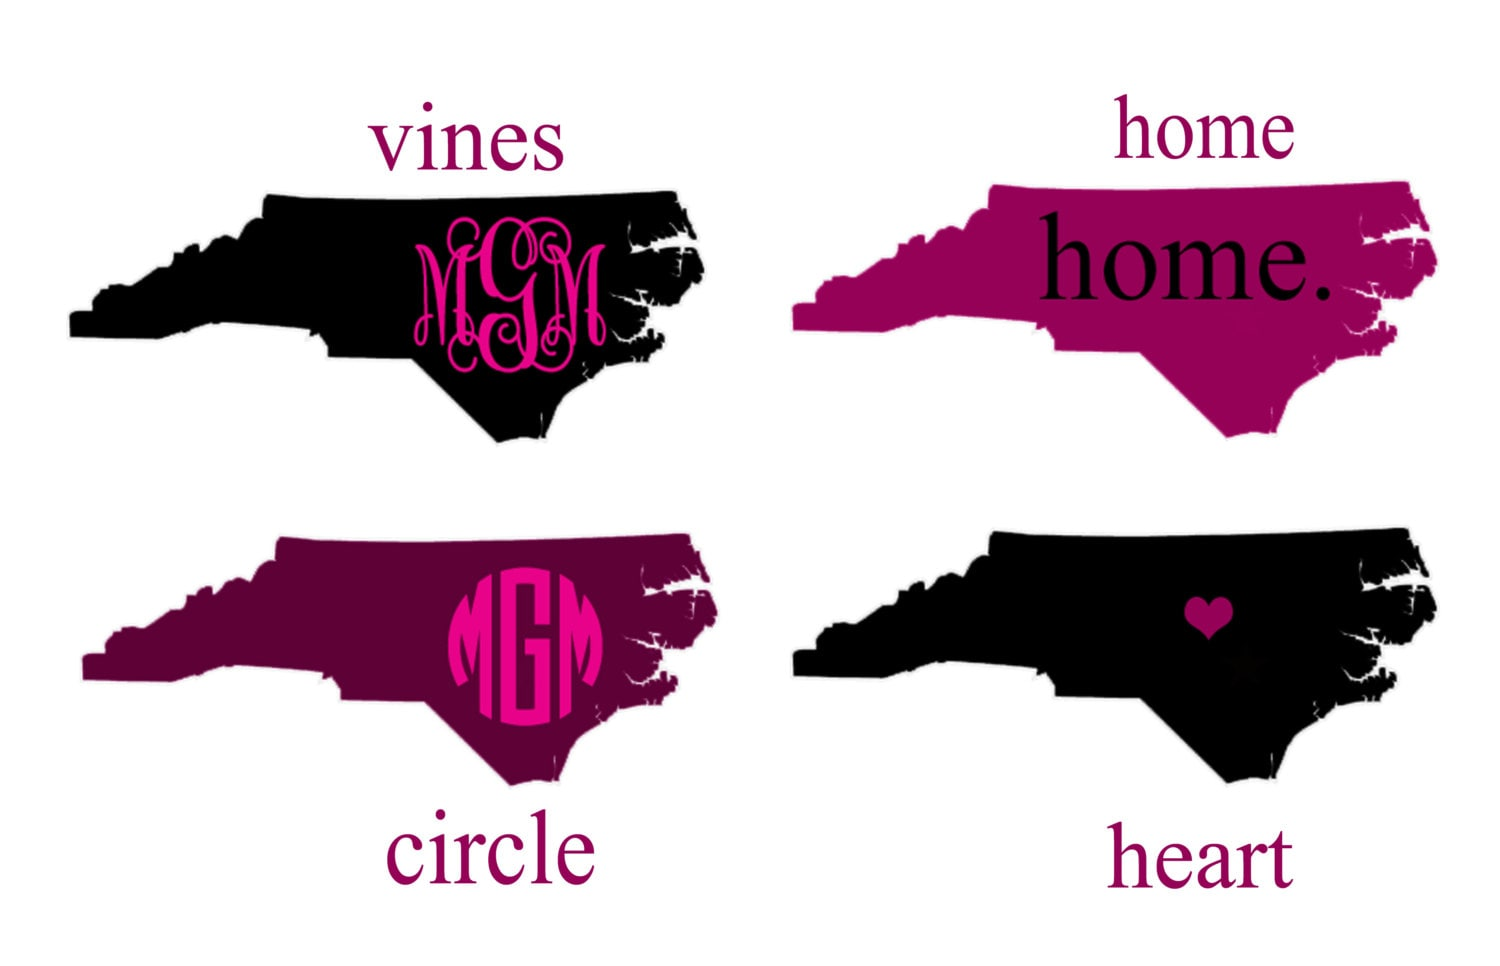 North Carolina State Decal Home By Creativelyyours2010 On Etsy